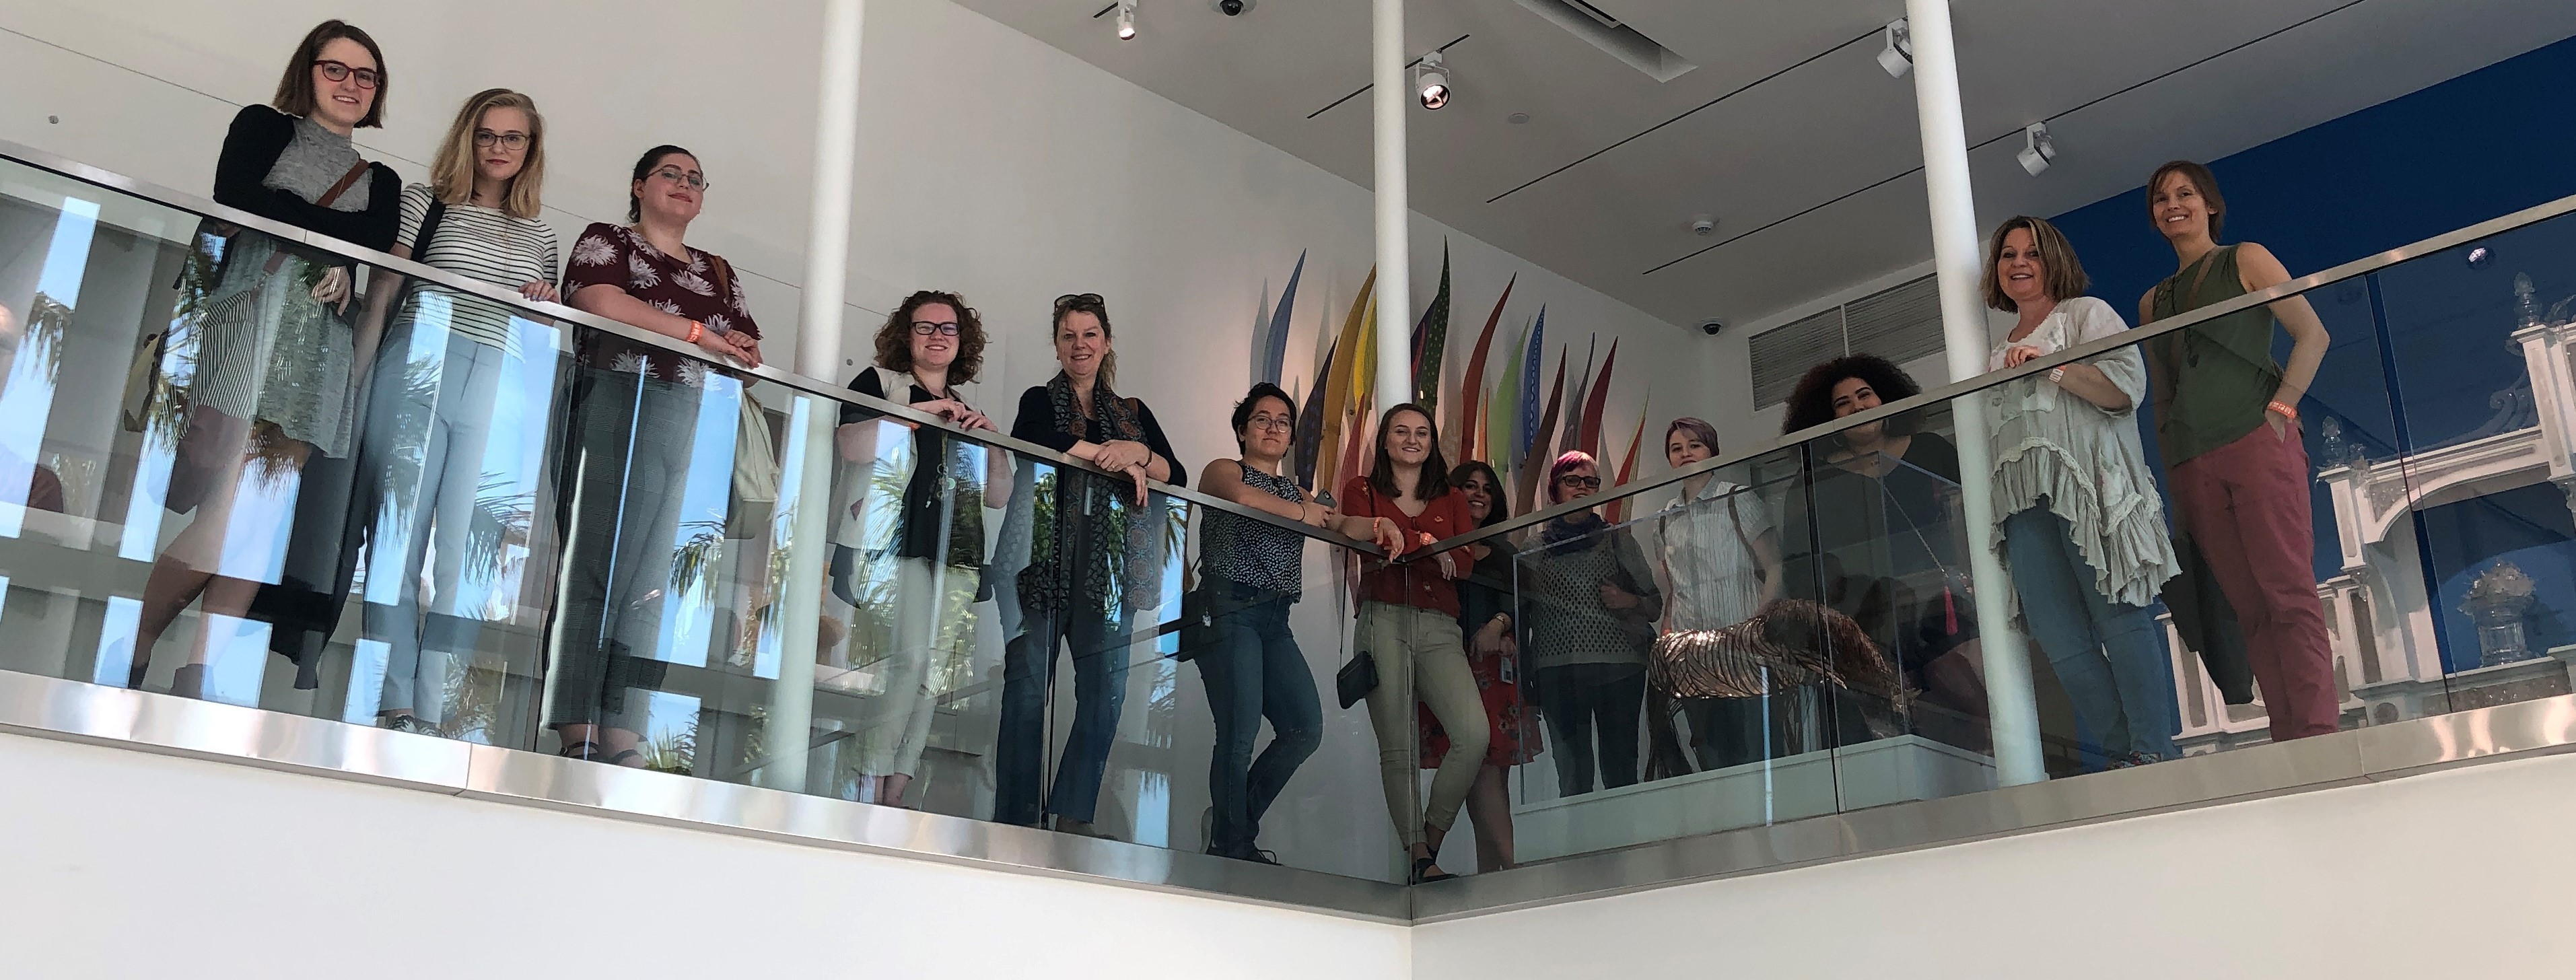 Art Museum Education and Visitor-Centered Exhibitions group photo in the Kotler-Coville Glass Pavillion, The Ringling